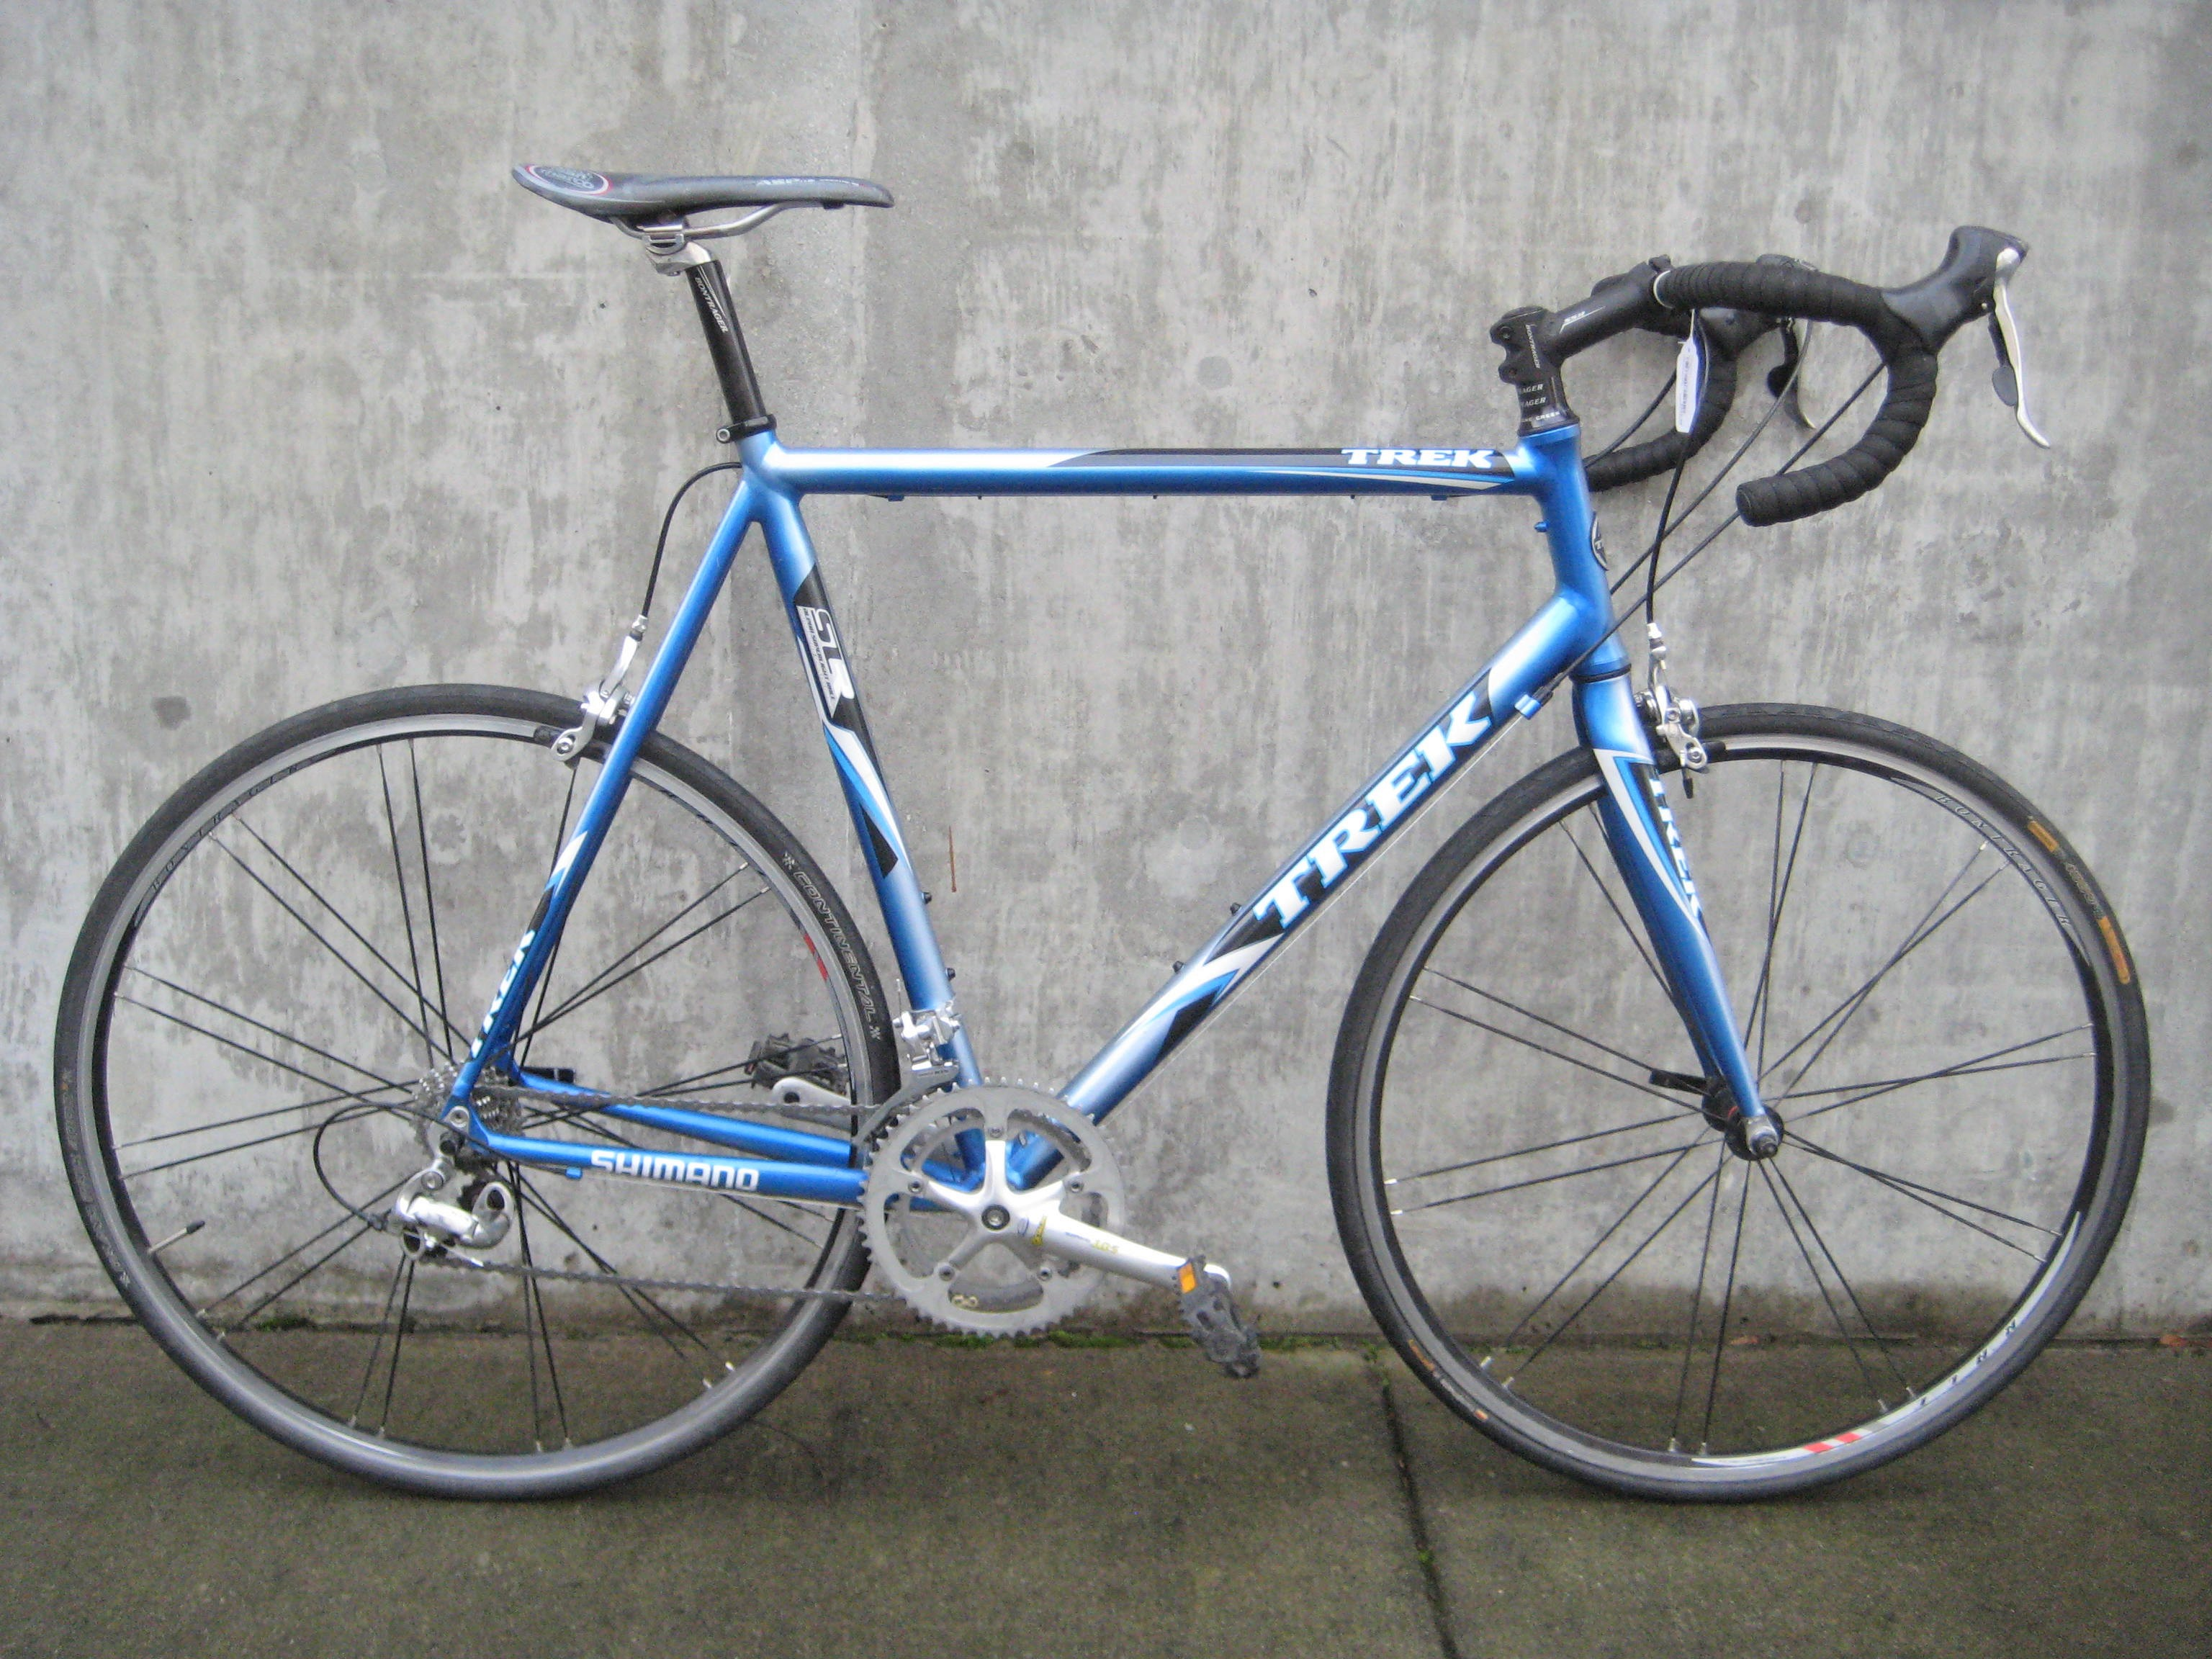 Used 62cm Trek SLR road bike for sale at Classic Cycle